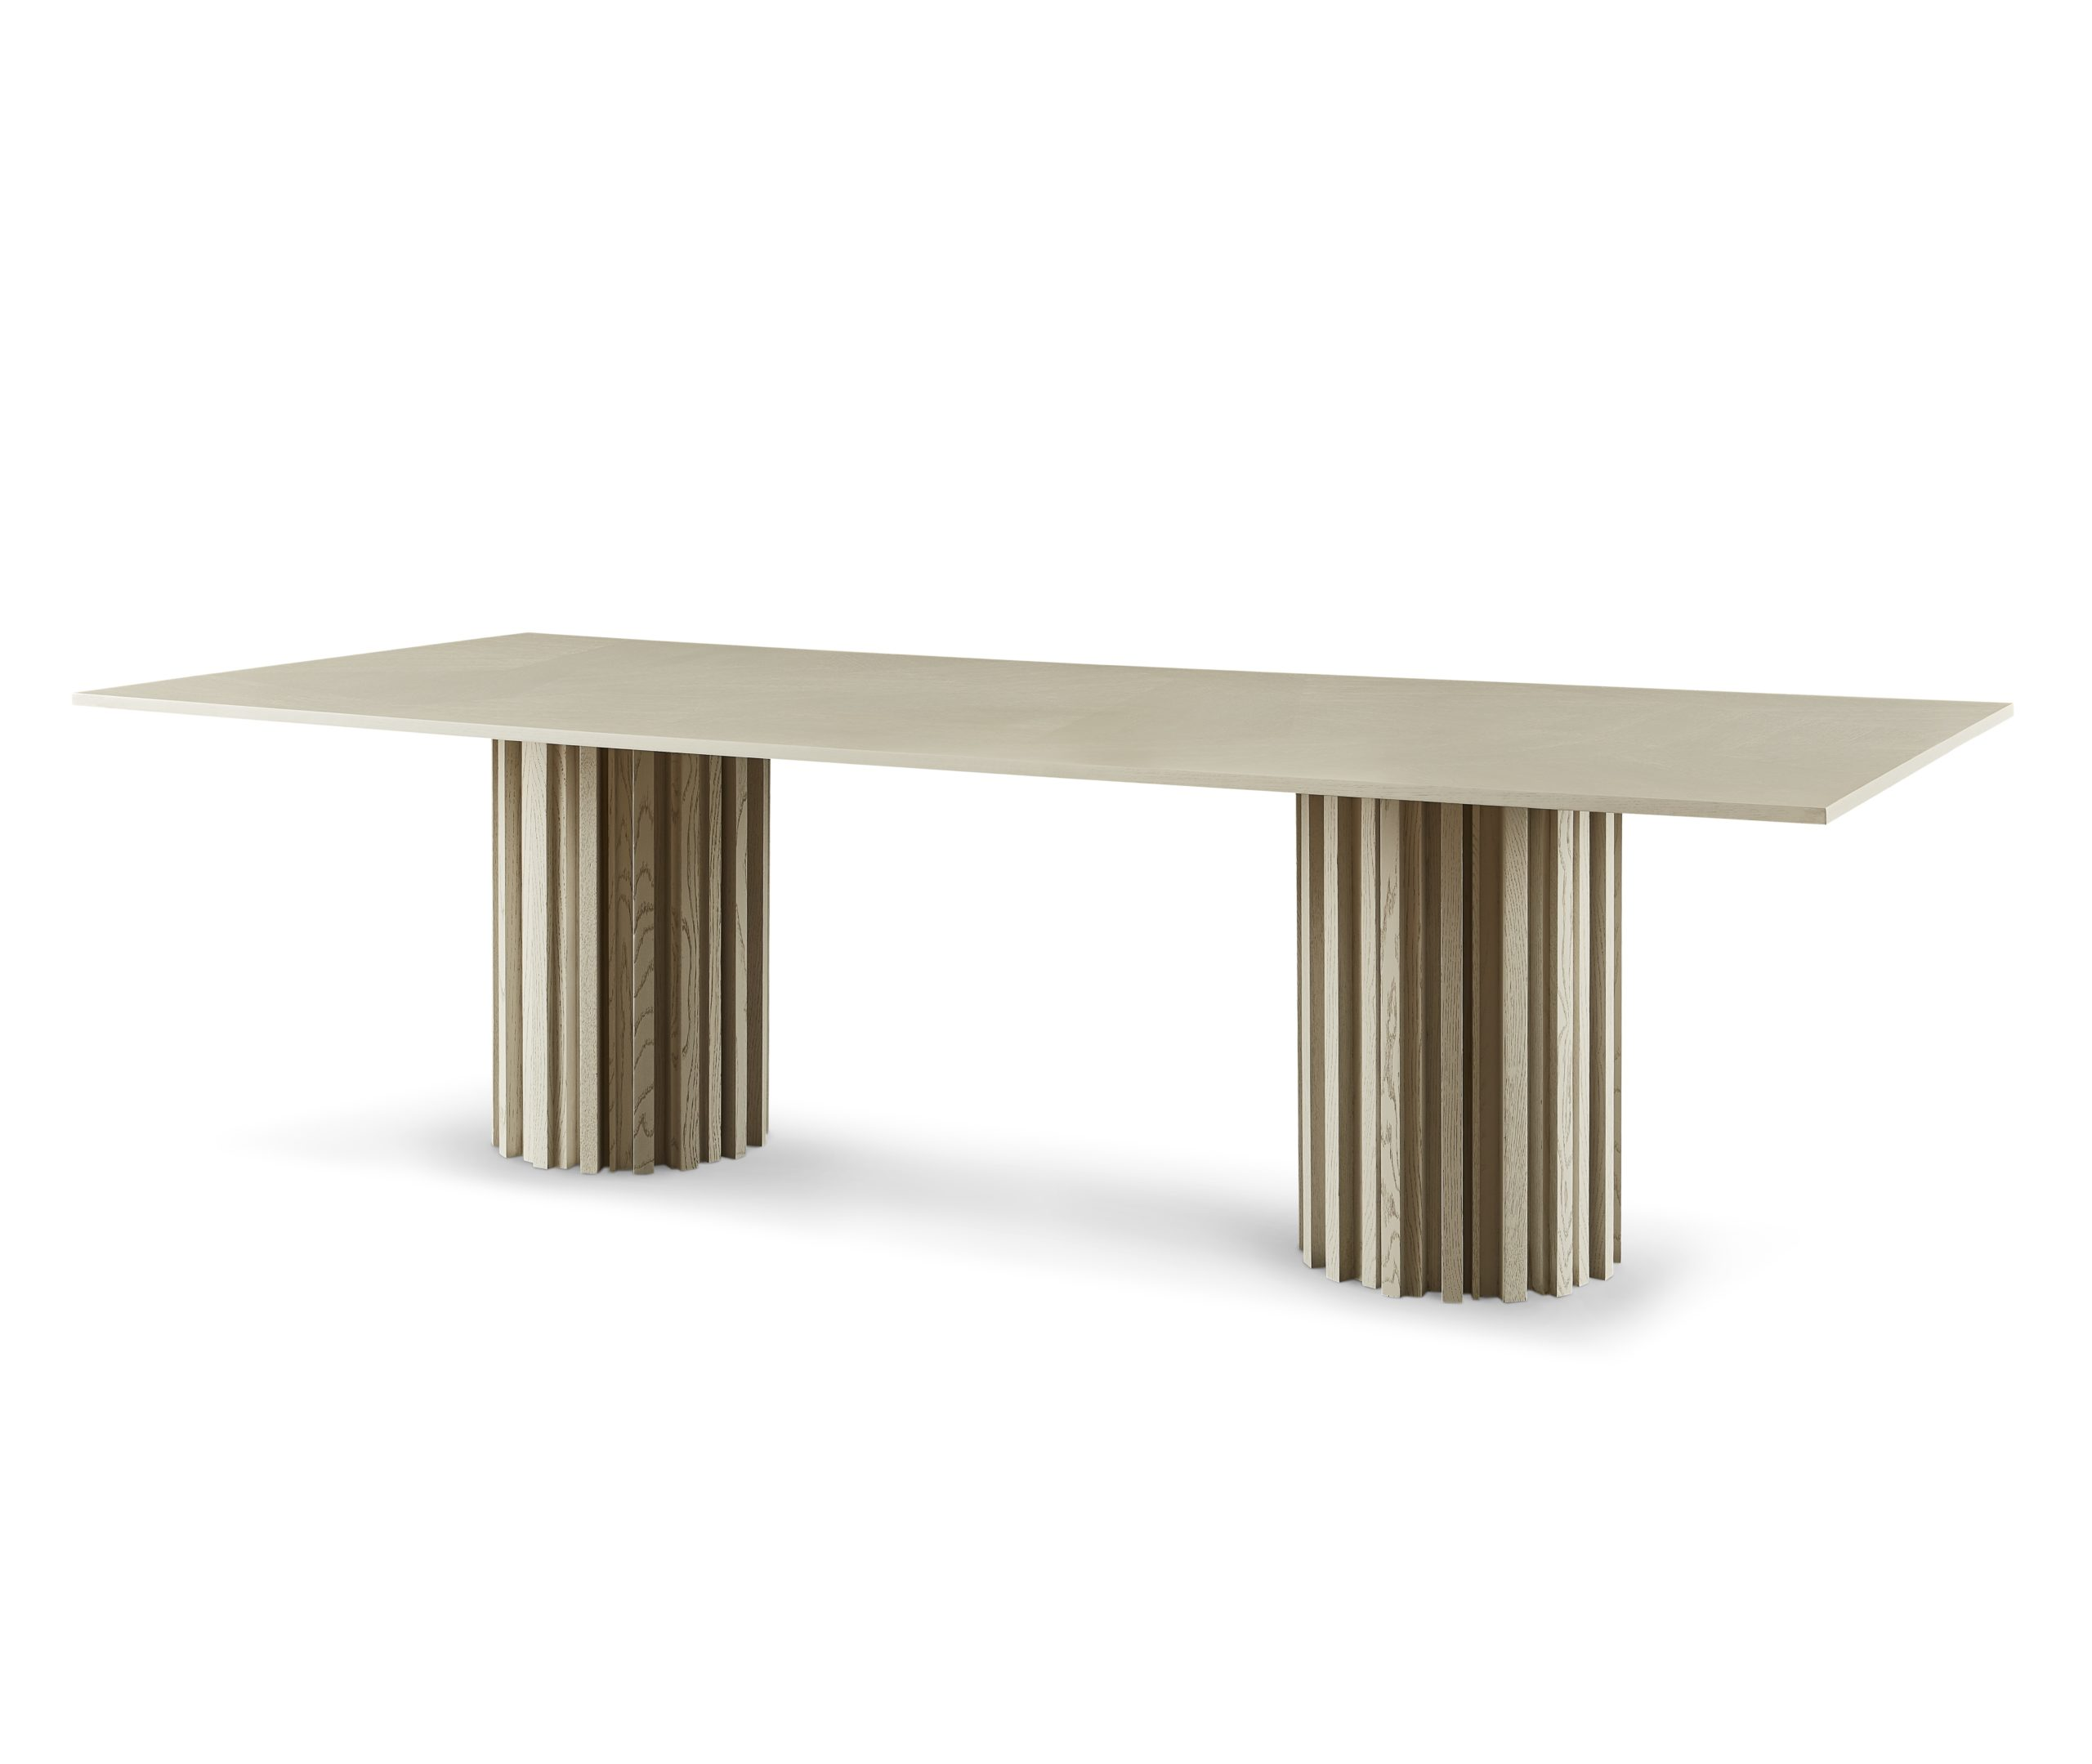 Baker_products_WNWN_huxley_dining_table_BAA3036_RECT_FRONT_3QRT-scaled-6